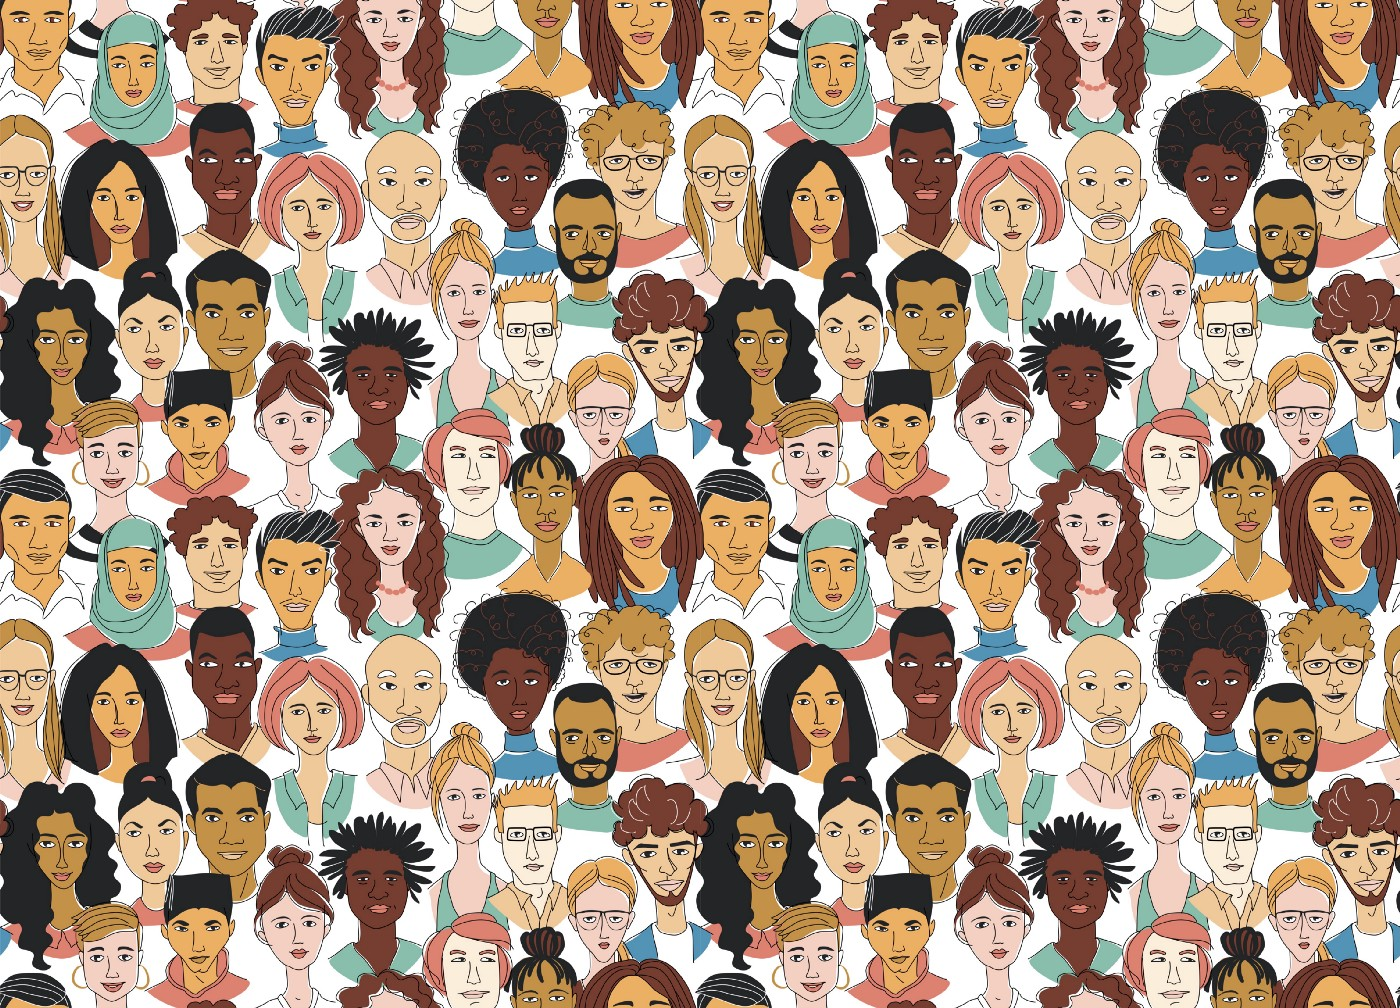 Creating inclusive and diverse workplaces